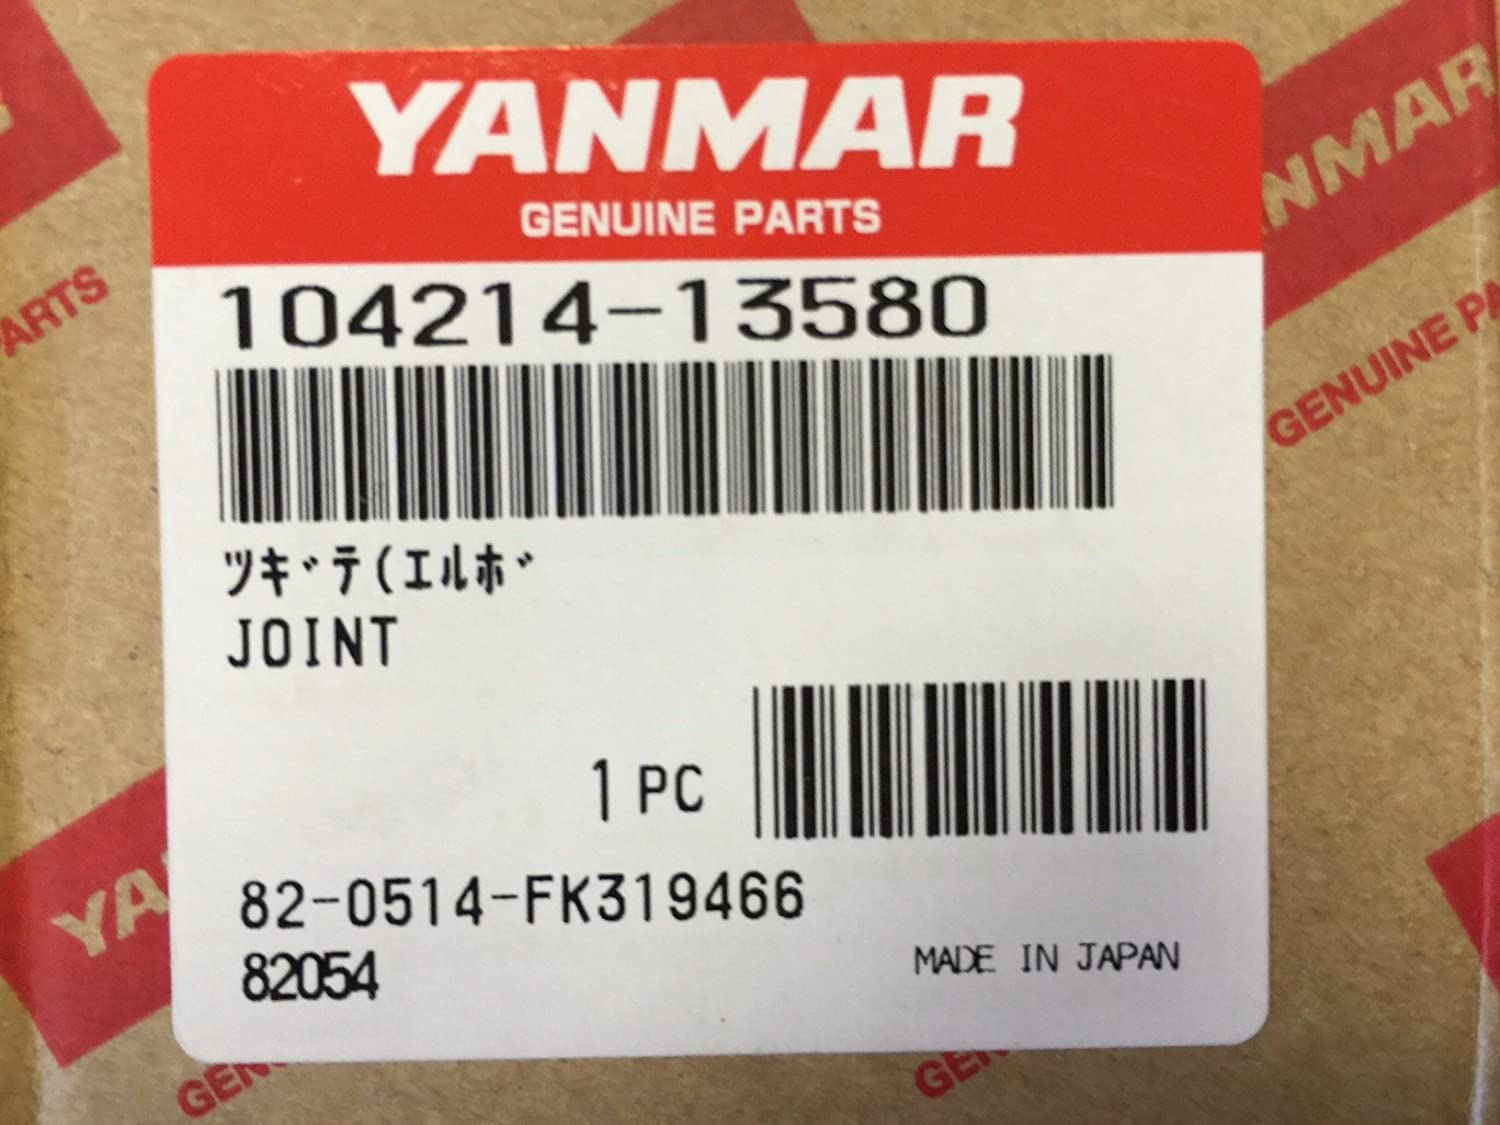 Kit Yanmar 104214-13521 Exhaust Elbow  /& 104214-13580 Joint  Genuine OEM